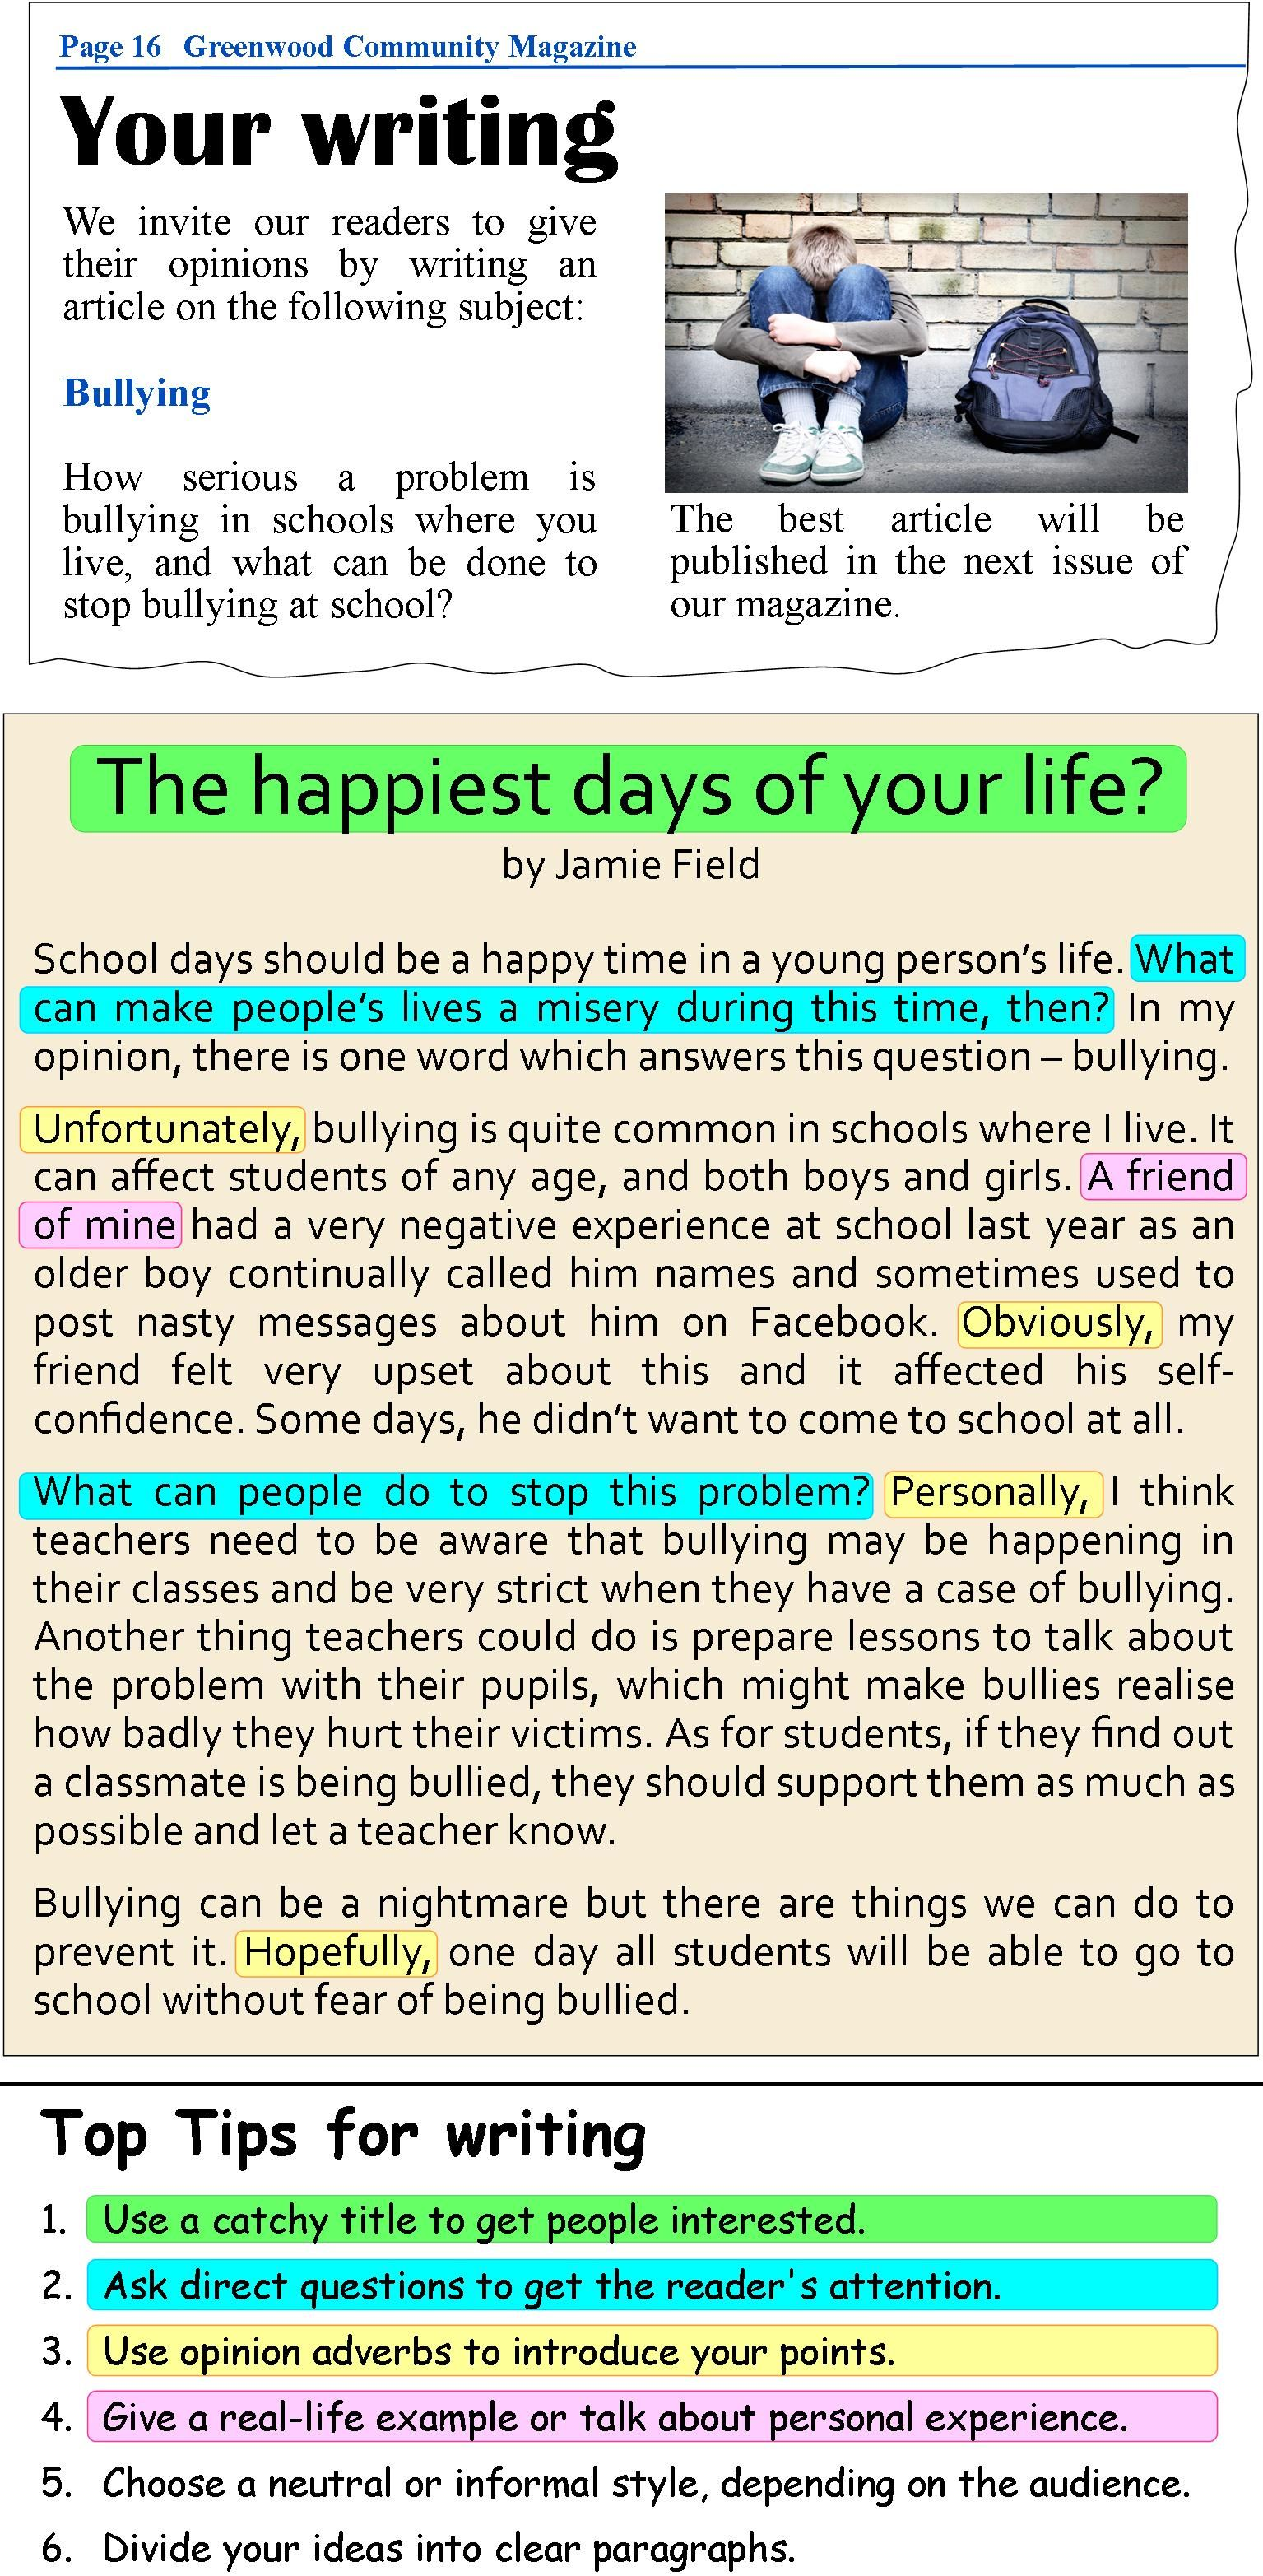 best ideas about articles on bullying bullying 17 best ideas about articles on bullying bullying teen bullying and kids discipline